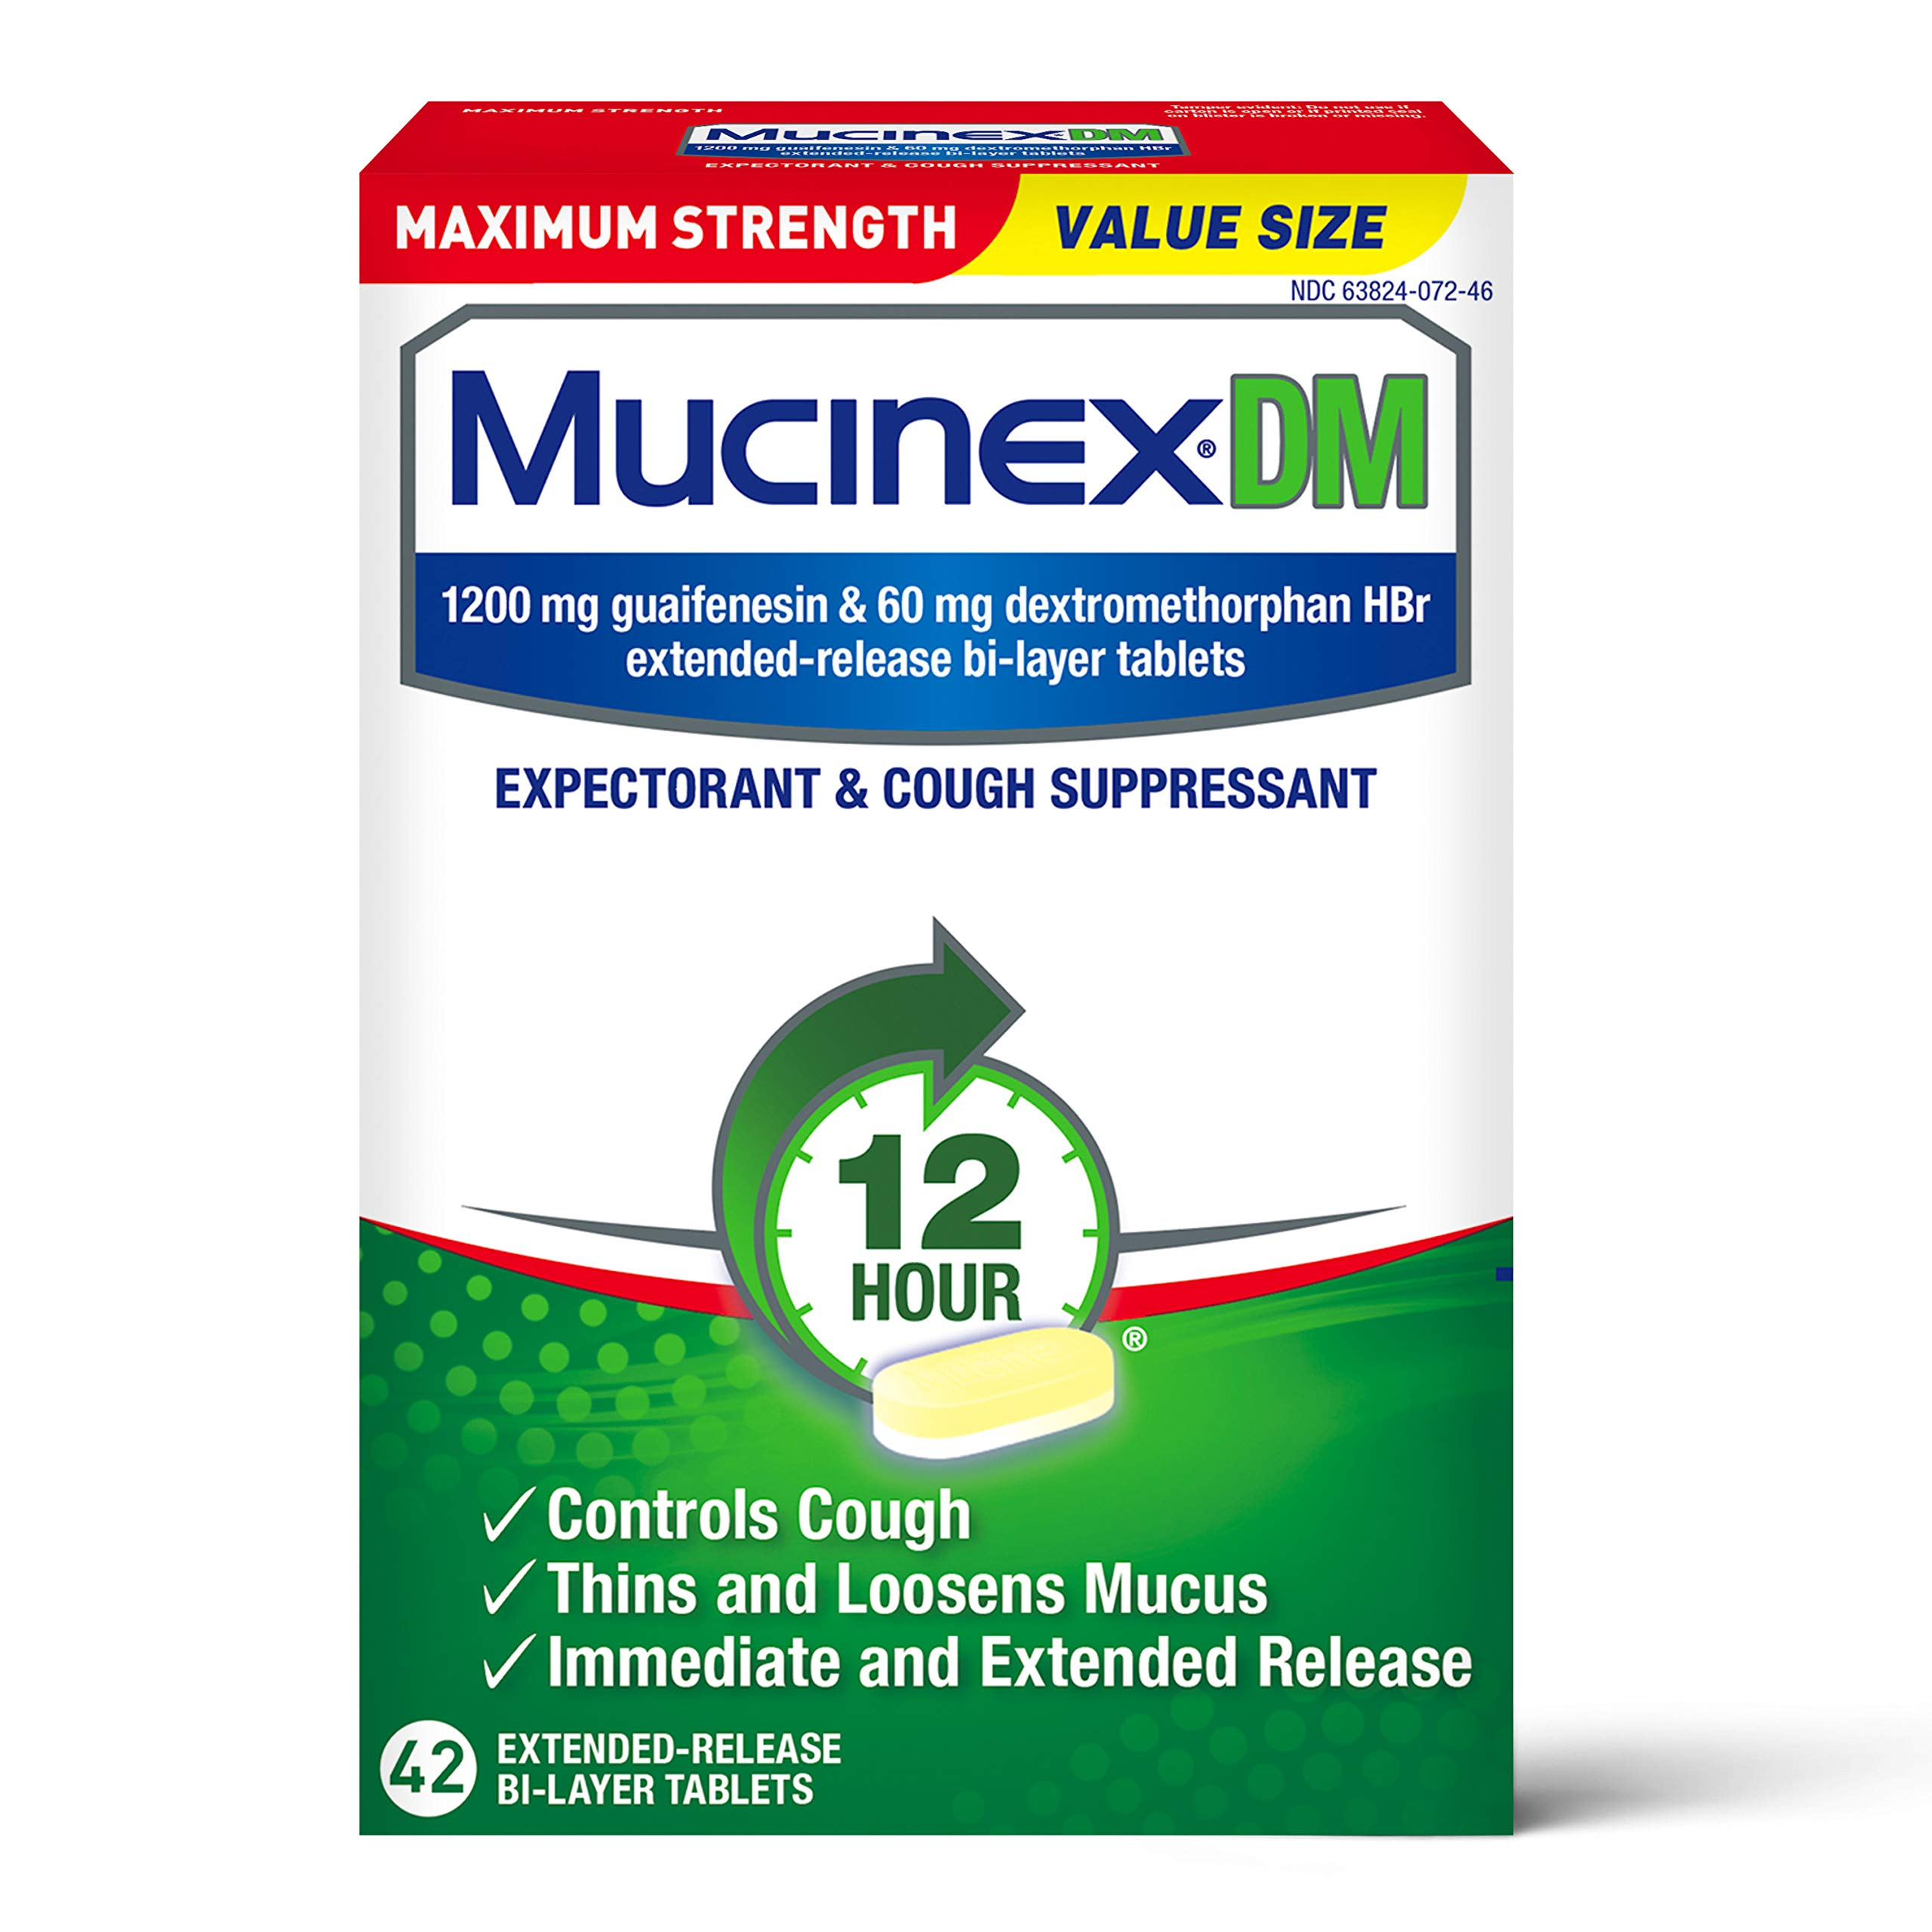 Cough Suppressant and Expectorant,Mucinex DM Maximum Strength 12 HourTablets 42ct, 1200 mg Guaifenesin,Relieves Chest Congestion,Quiets Wet and Dry Cough,#1Doctor Recommended OTC expectorant